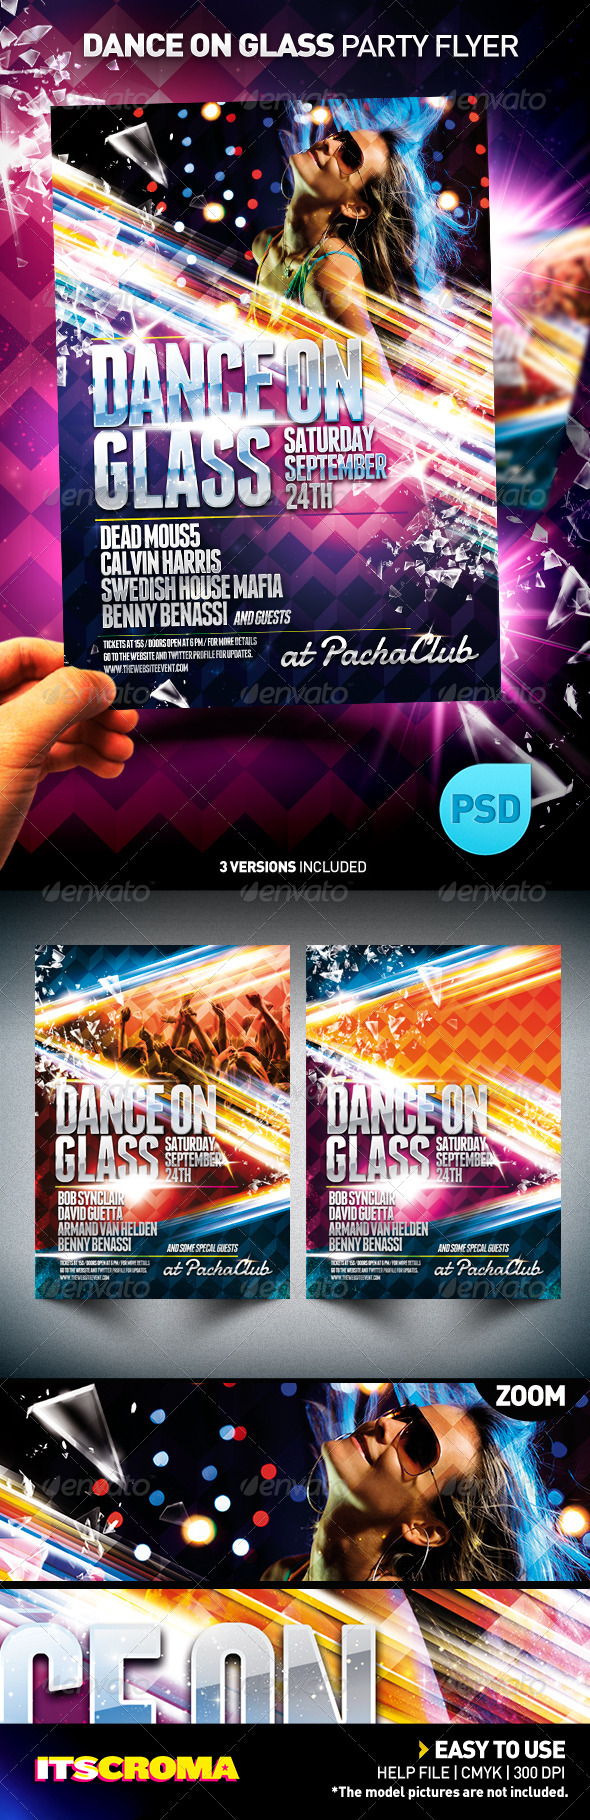 NightClub Party Flyer Template | Dance on Glass  - Clubs & Parties Events